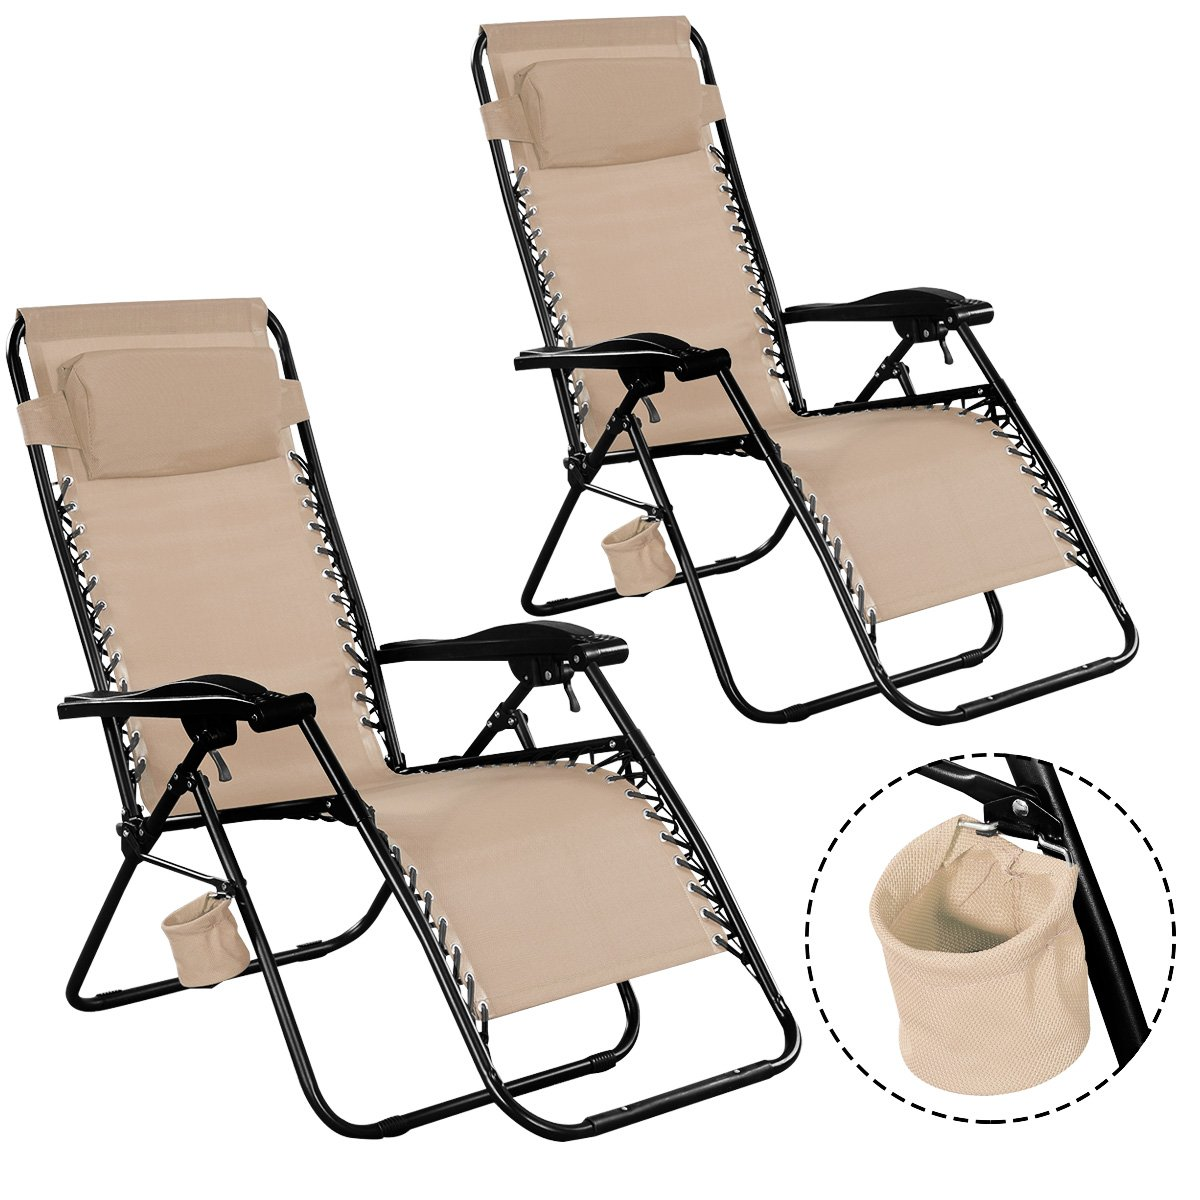 Giantex Folding Zero Gravity Reclining Lounge Chairs Outdoor Beach Patio Yard New 2Light Brown